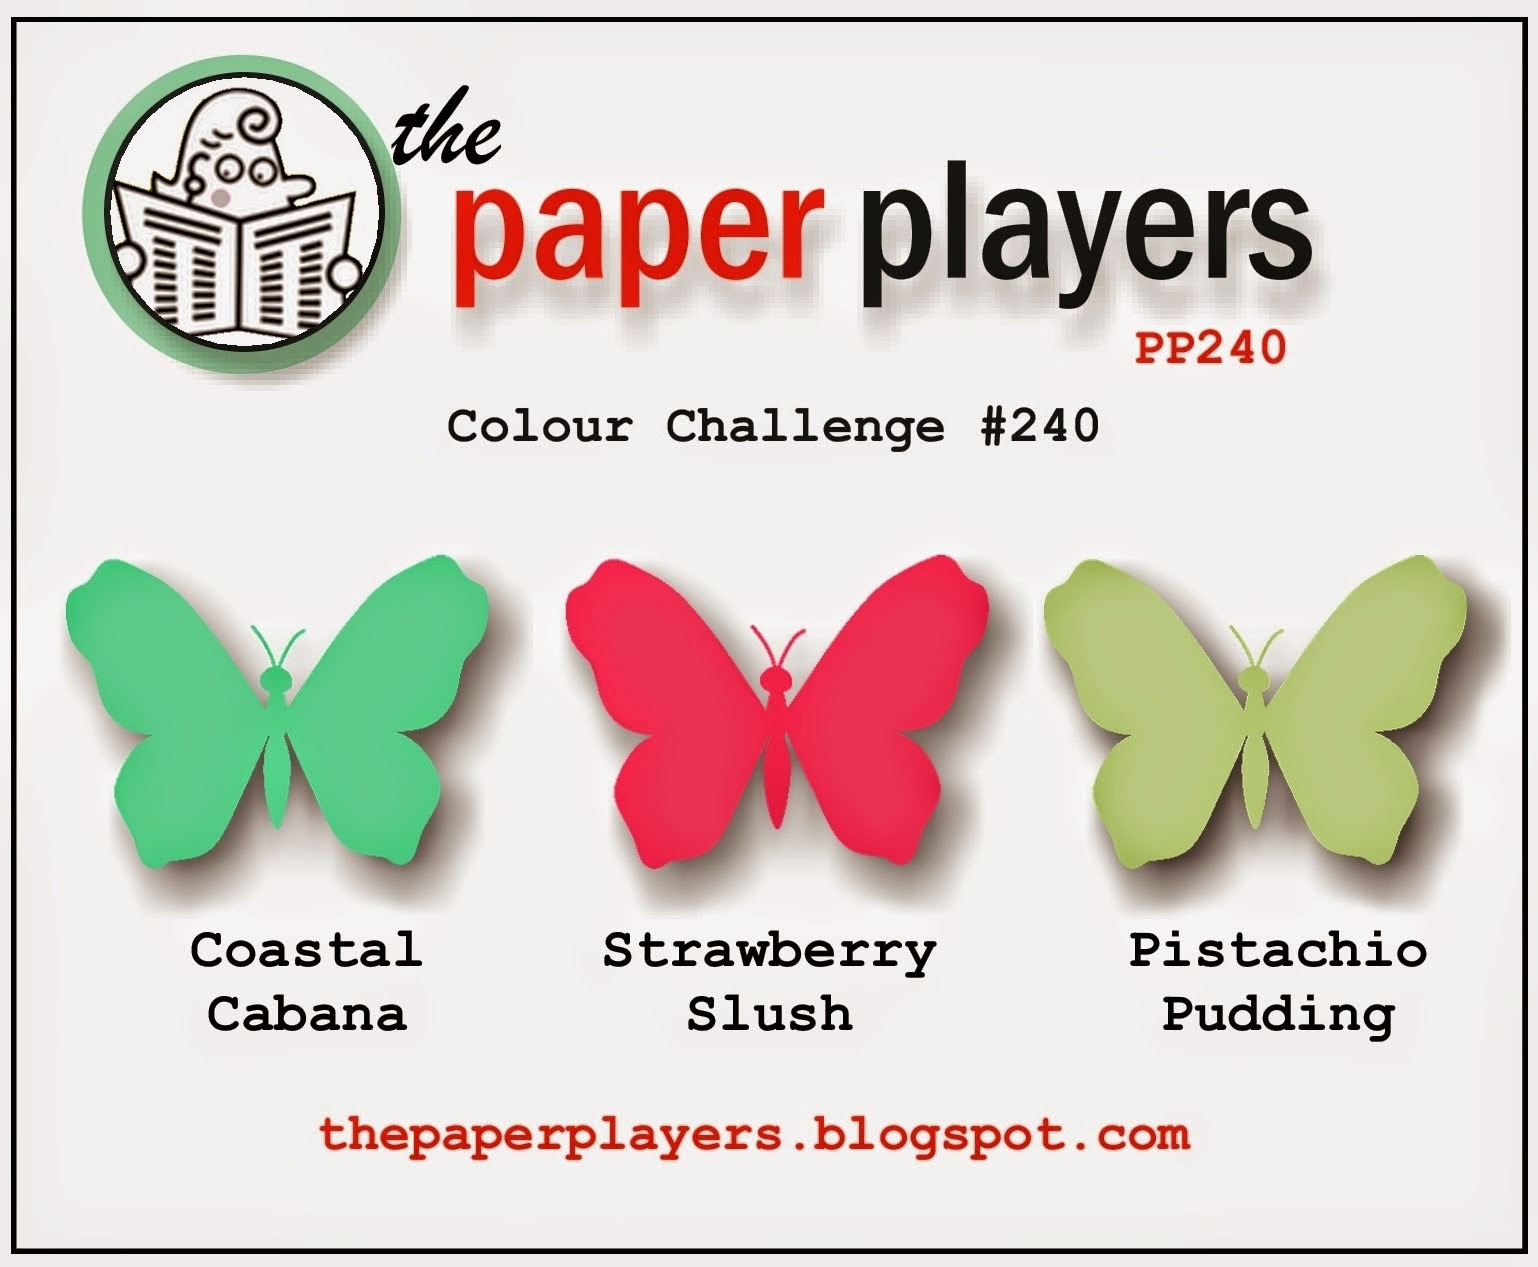 http://thepaperplayers.blogspot.ca/2015/04/pp240-colour-challenge-from-joanne.html